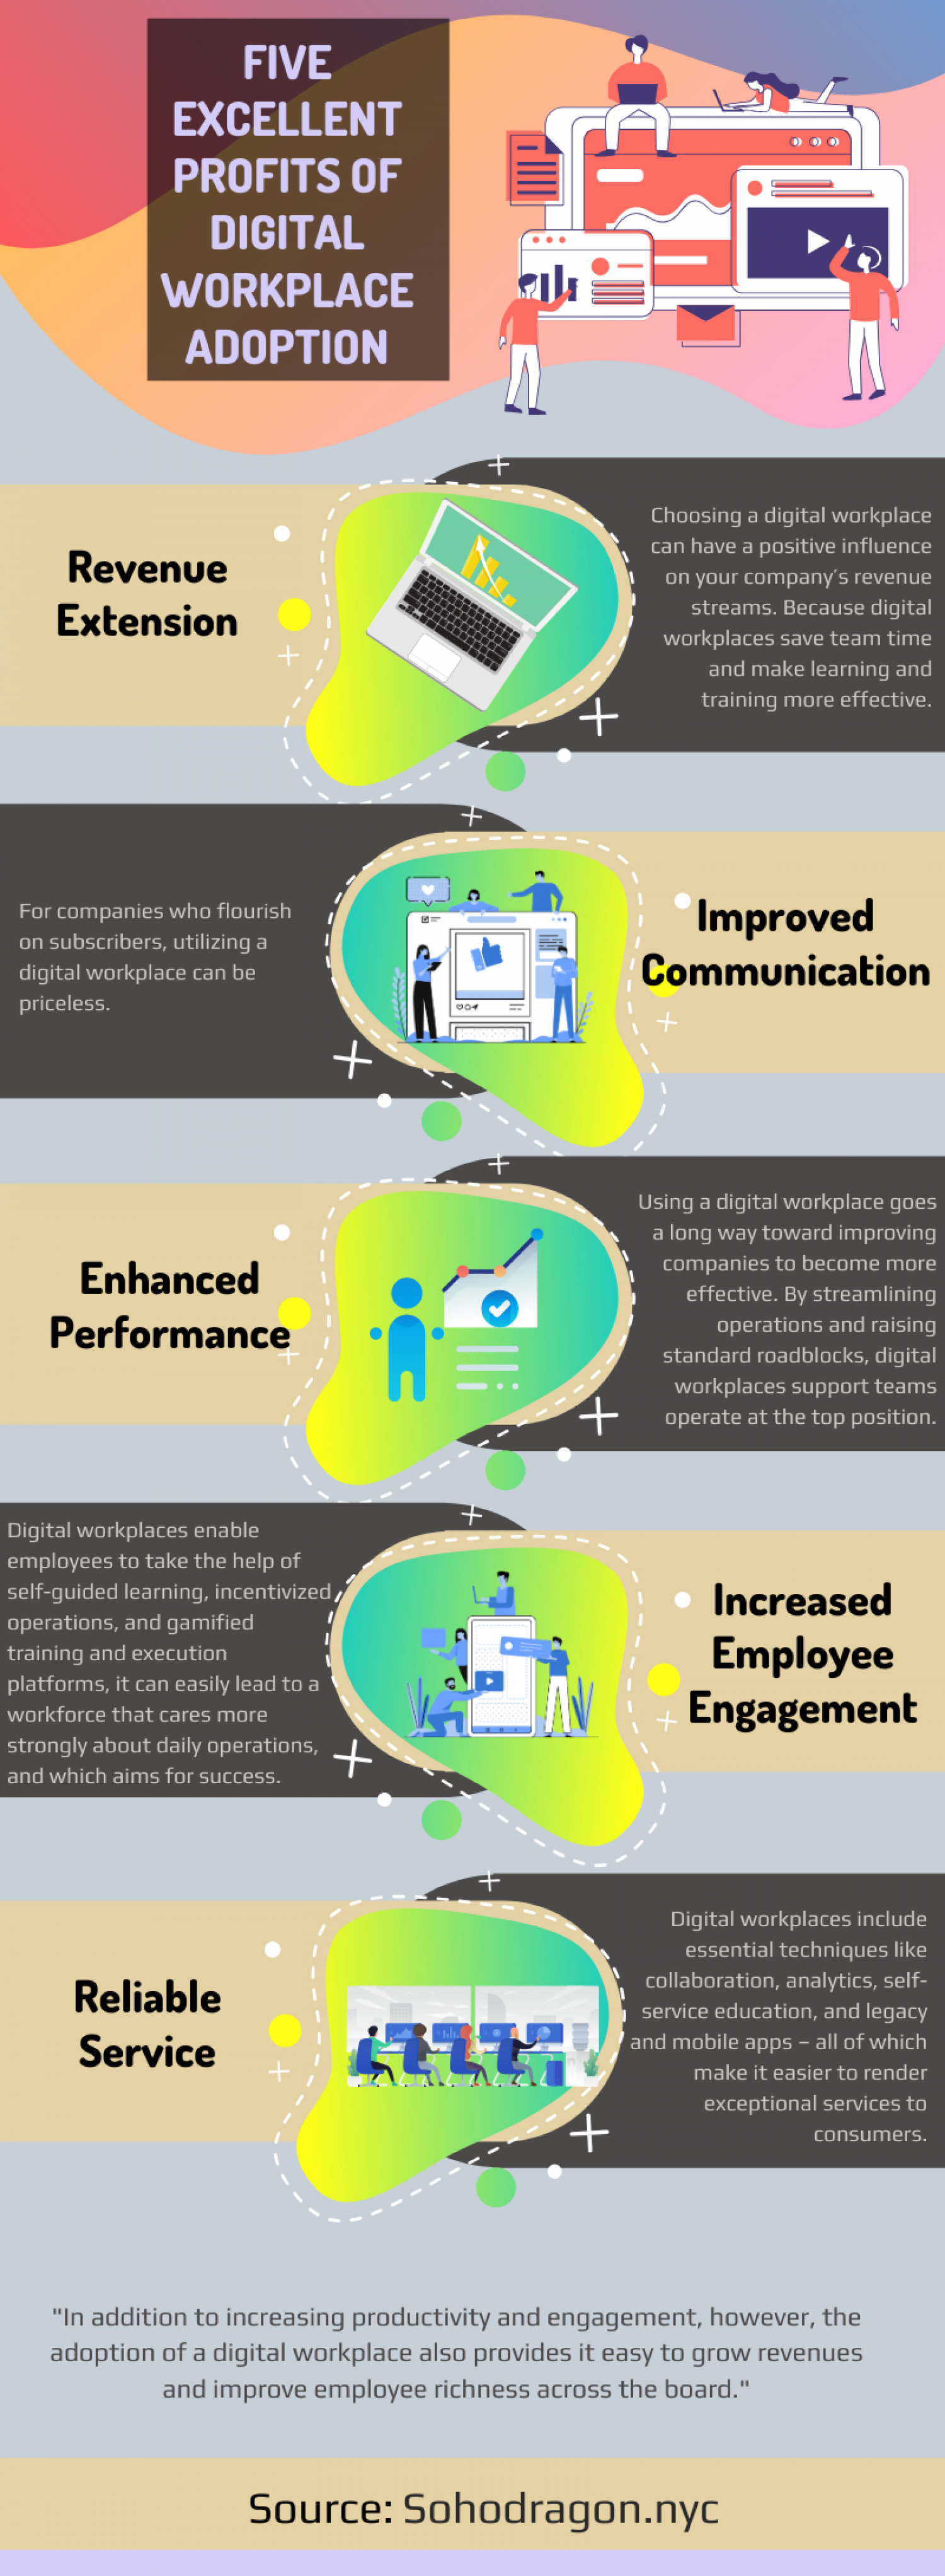 Five Excellent Profits of Digital Workplace Adoption Infographic